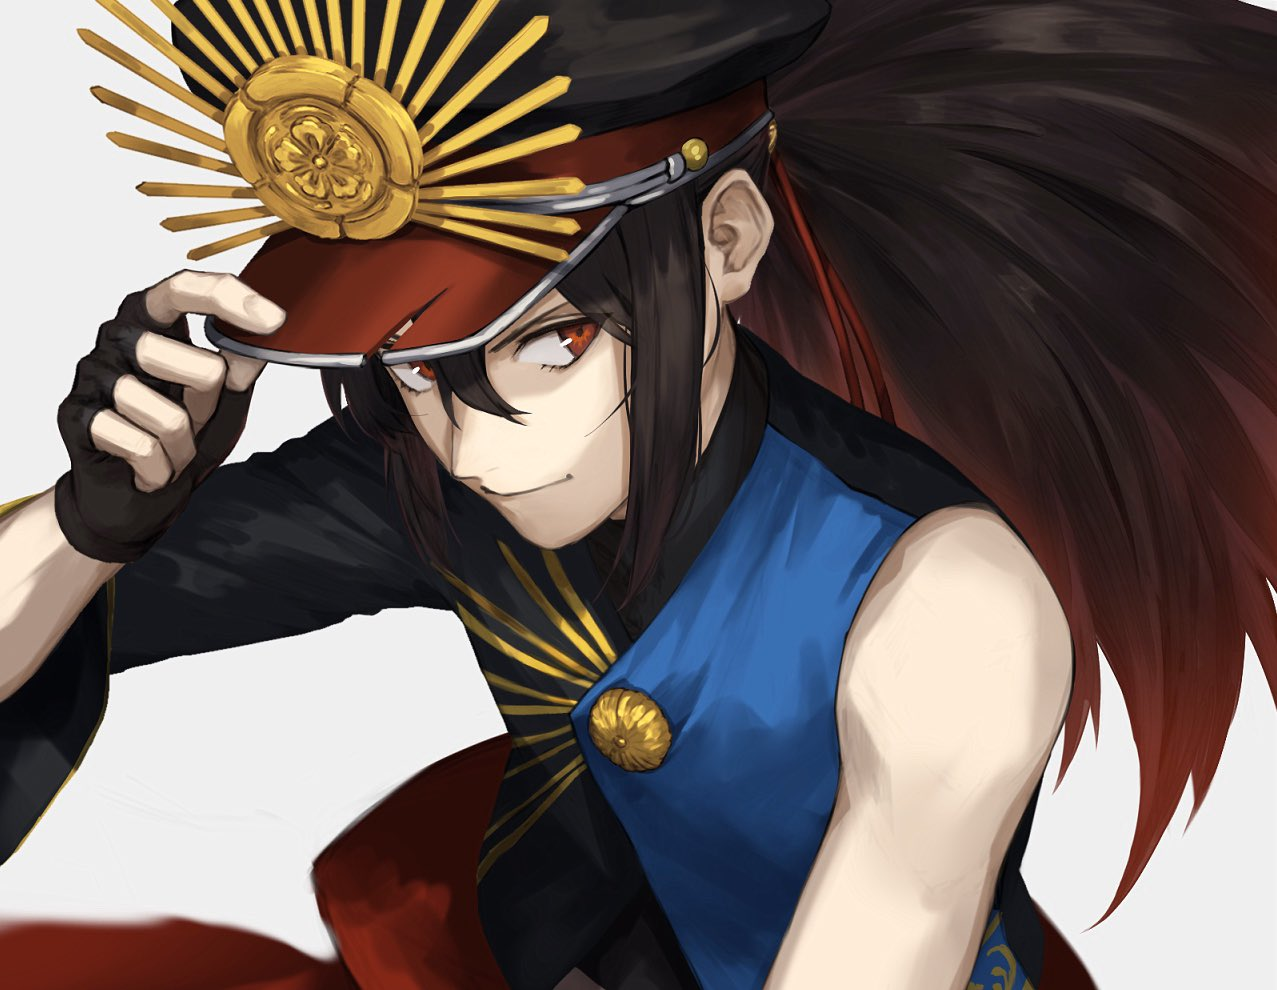 1other bangs black_gloves black_hair crop_top family_crest fate/grand_order fate_(series) fingerless_gloves gloves hand_on_headwear hat koha-ace kouzuki_kei looking_at_viewer multicolored_hair oda_kippoushi_(fate) oda_nobunaga_(fate)_(all) oda_uri parted_bangs peaked_cap ponytail red_eyes shiny shiny_hair single_sleeve smile white_background